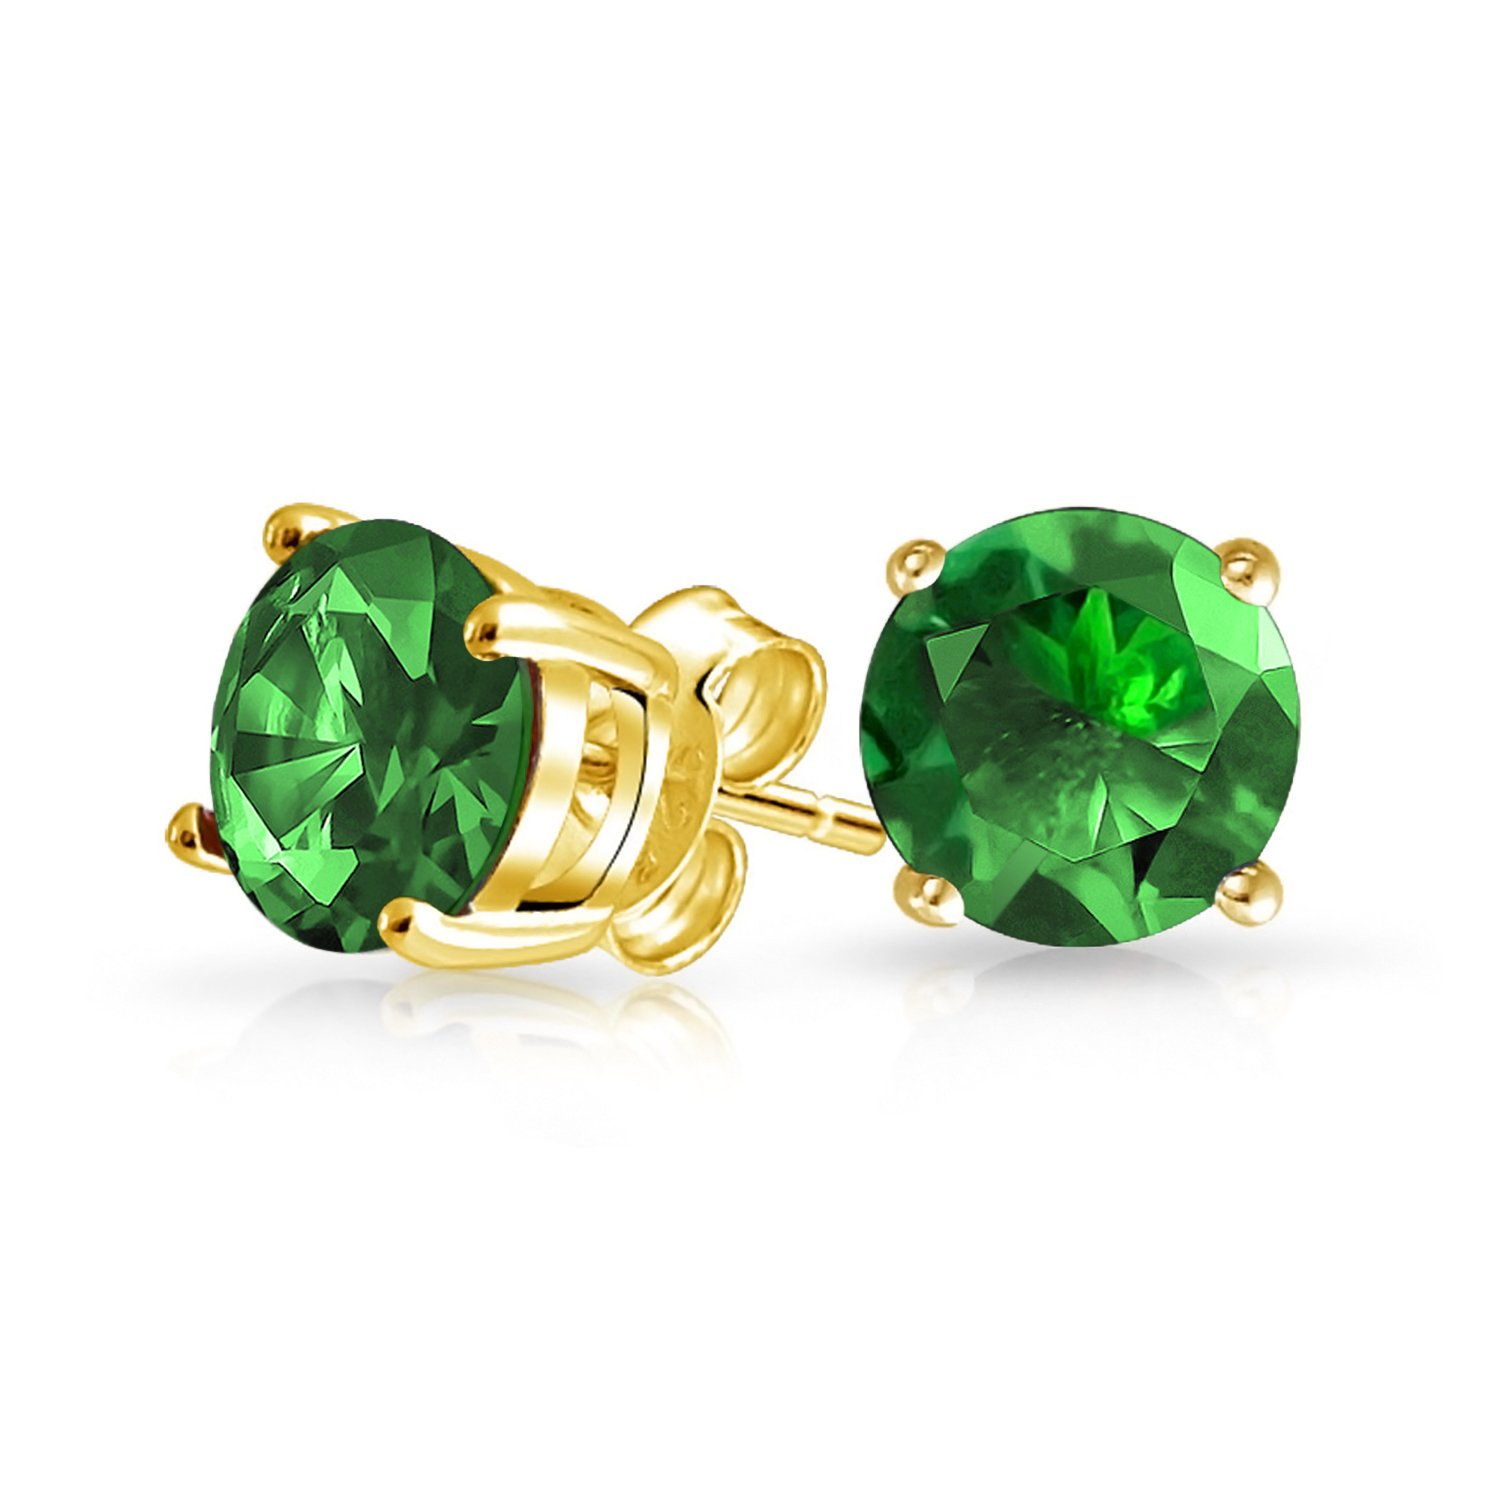 Bling Jewelry 925 Silver Gold Plated Simulated Emerald Round CZ Stud Earrings 7mm ZDC-C008G-EM